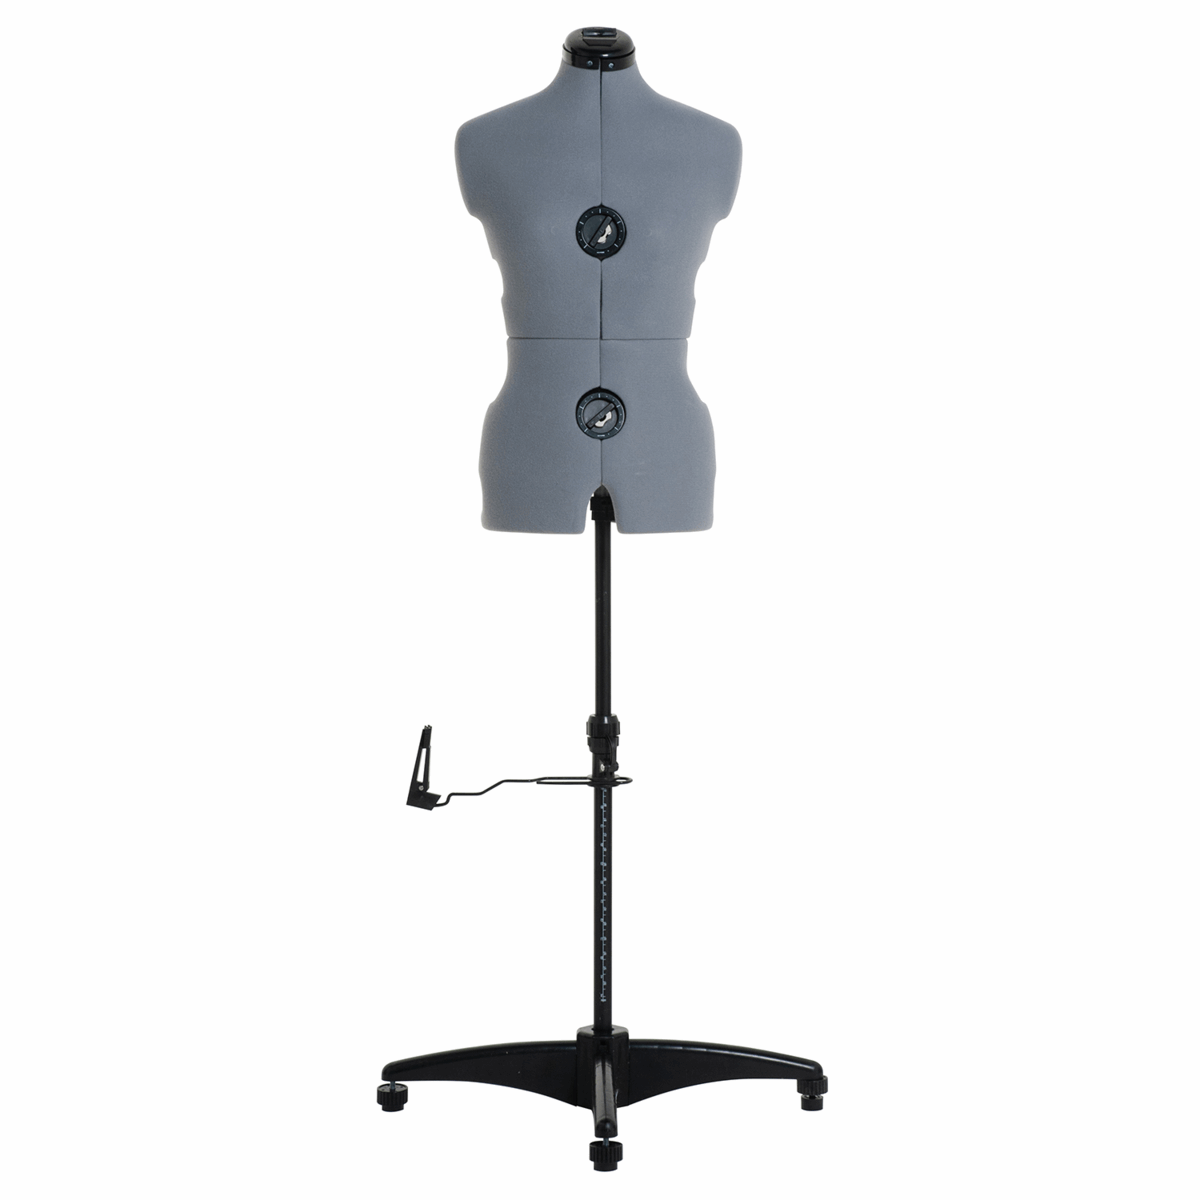 Adjustable Dress Form with Hem Marker: Small: Grey - Dress size: 8-16 (Tailors Dummy / Mannequin) - Delivery due later in December